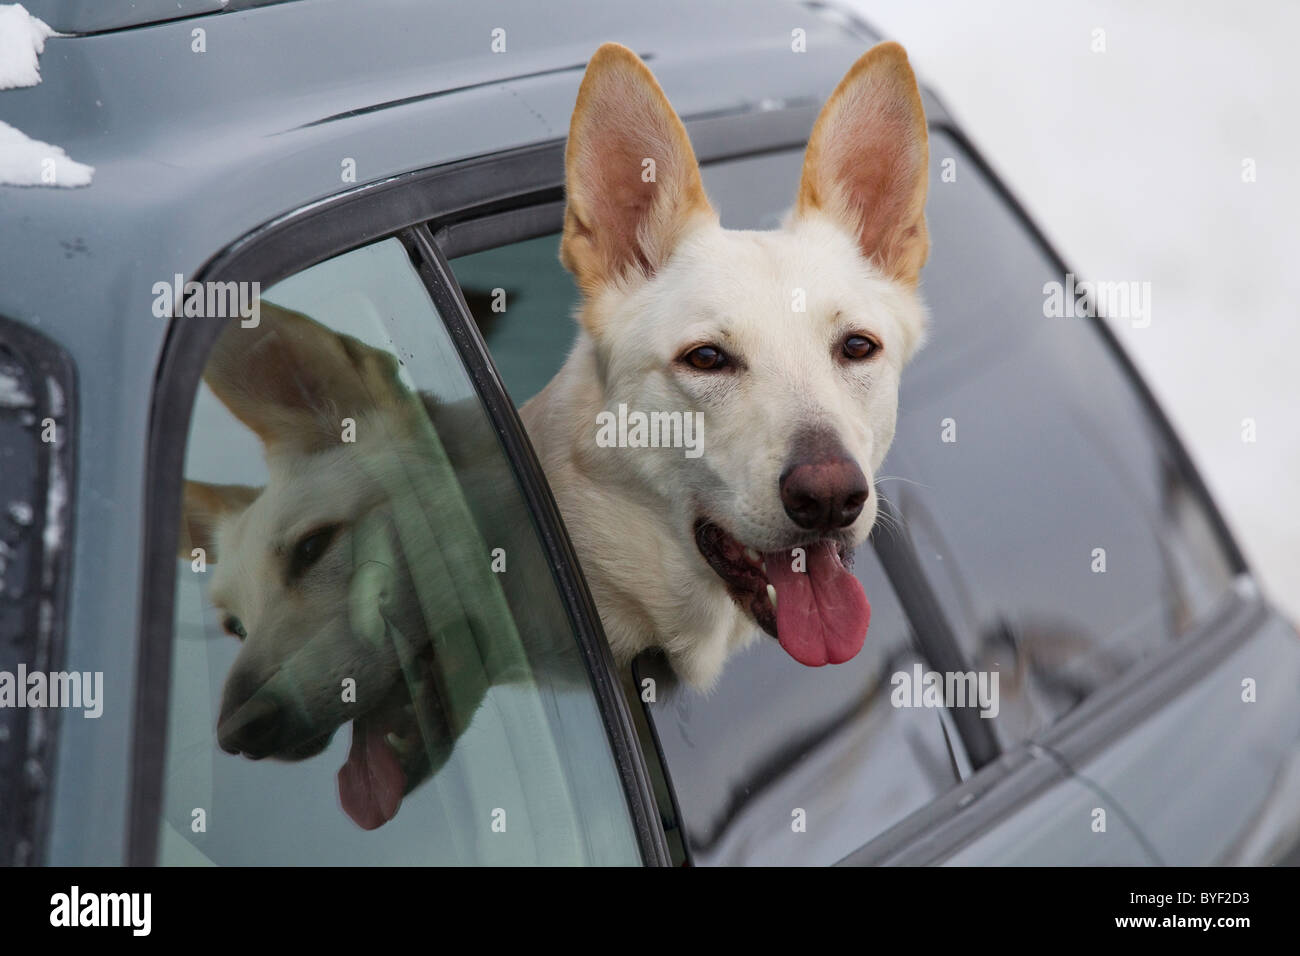 White German shepherd dog riding in car with head out car window - Stock Image